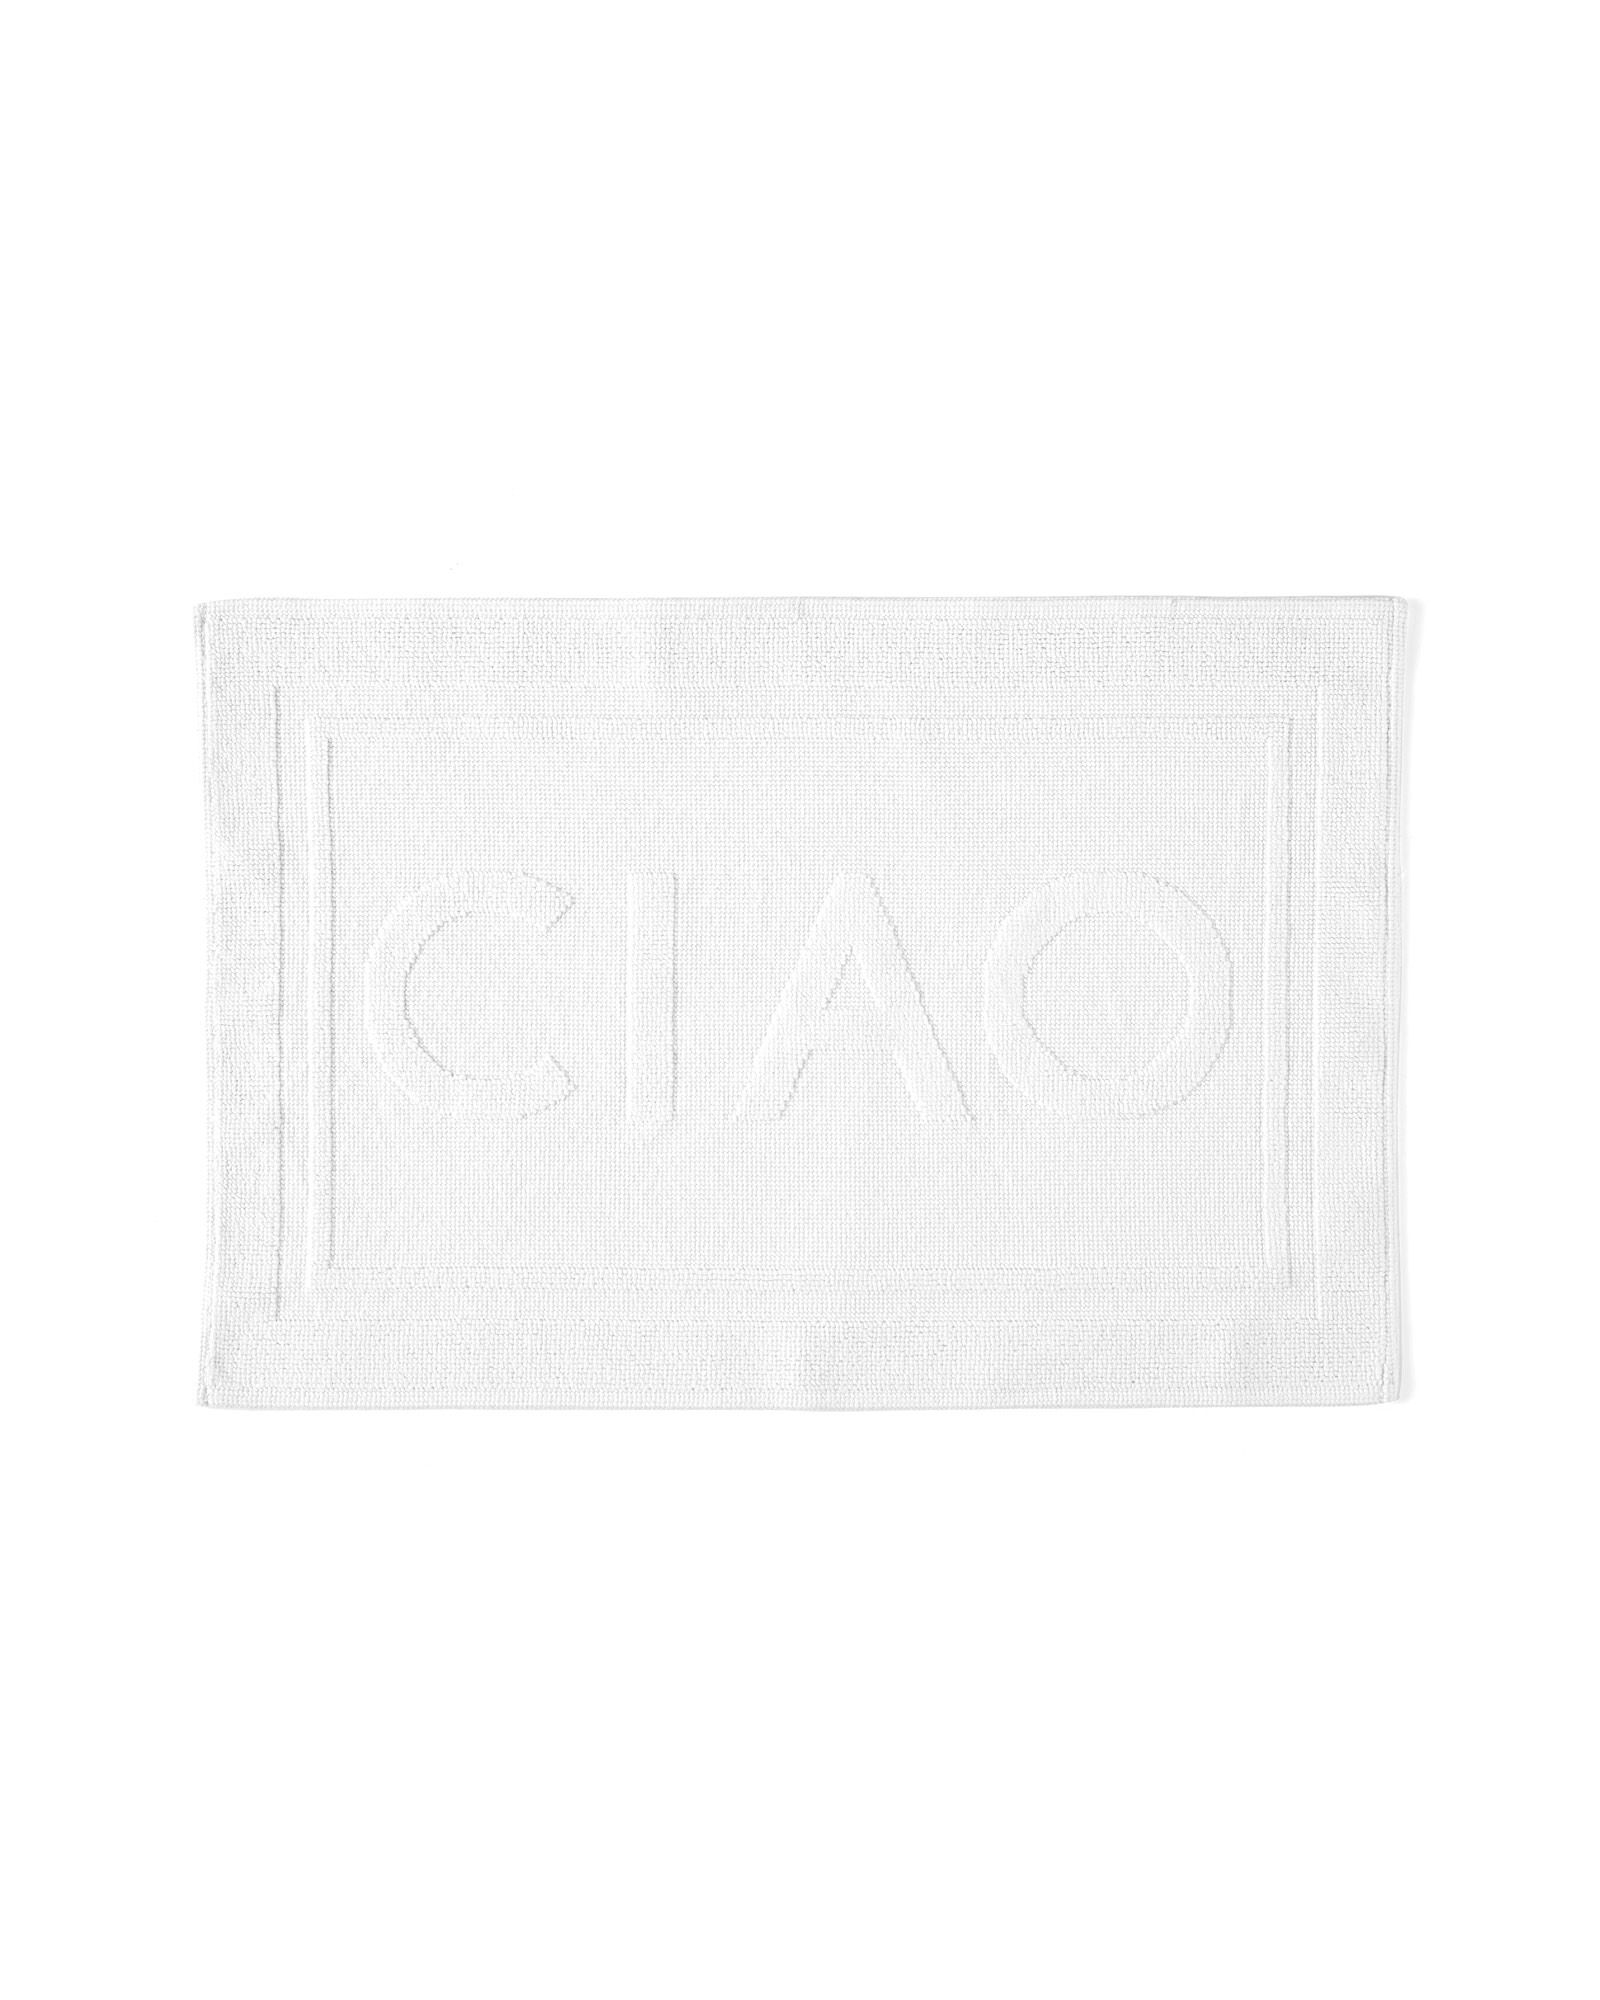 Ha Ha Had To Pin This Plush And Soft Our Cotton Bath Mat Adds Playful Personality To The Bath With Images Nautical Bathroom Decor Bath Mat Designer Bath Rugs